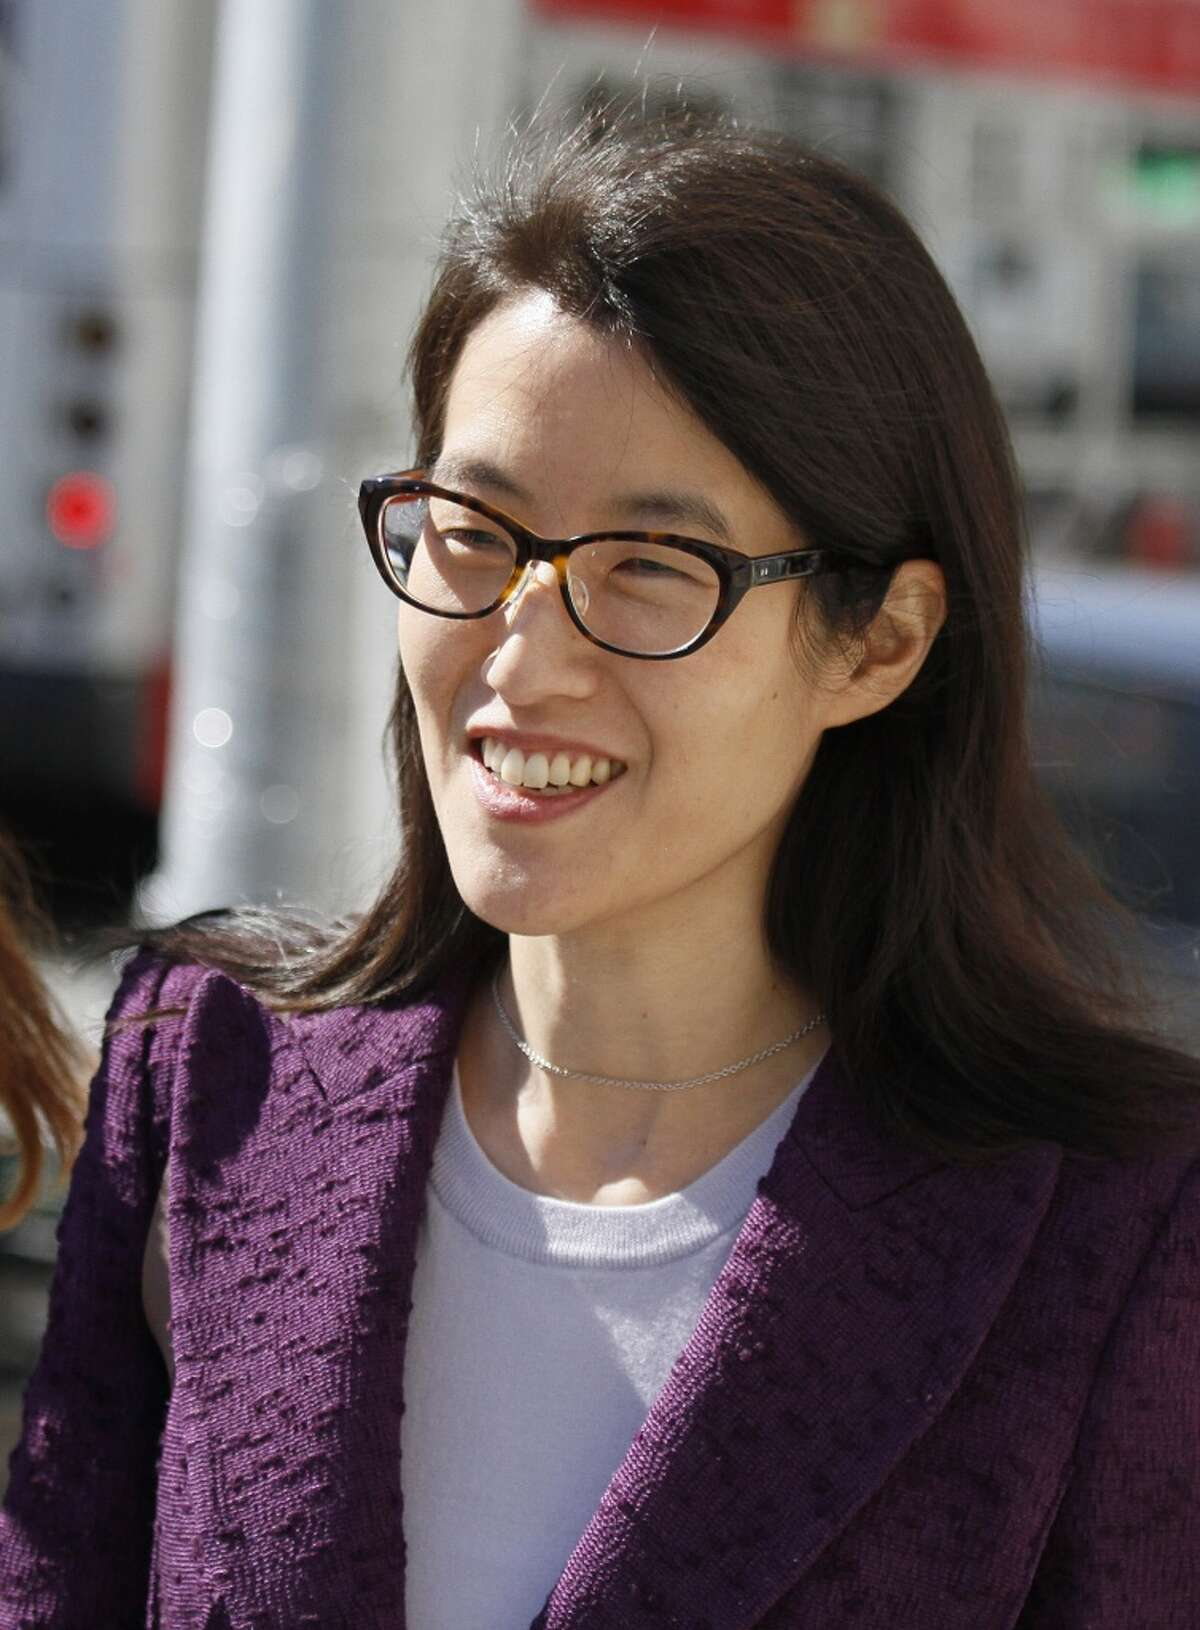 Ellen Pao leaves the Civic Center Courthouse during a lunch break in her trial Tuesday, Feb. 24, 2015, in San Francisco. A jury heard opening arguments Tuesday in a multi-million dollar sexual harassment lawsuit filed by the current interim chief of the news and social media site Reddit against a prominent Silicon Valley venture capital firm. Pau is seeking $16 milion in her suit against Kleiner Perkins Caulfield and Byers, alleging she was sexually harassed by male officials. (AP Photo/Eric Risberg)